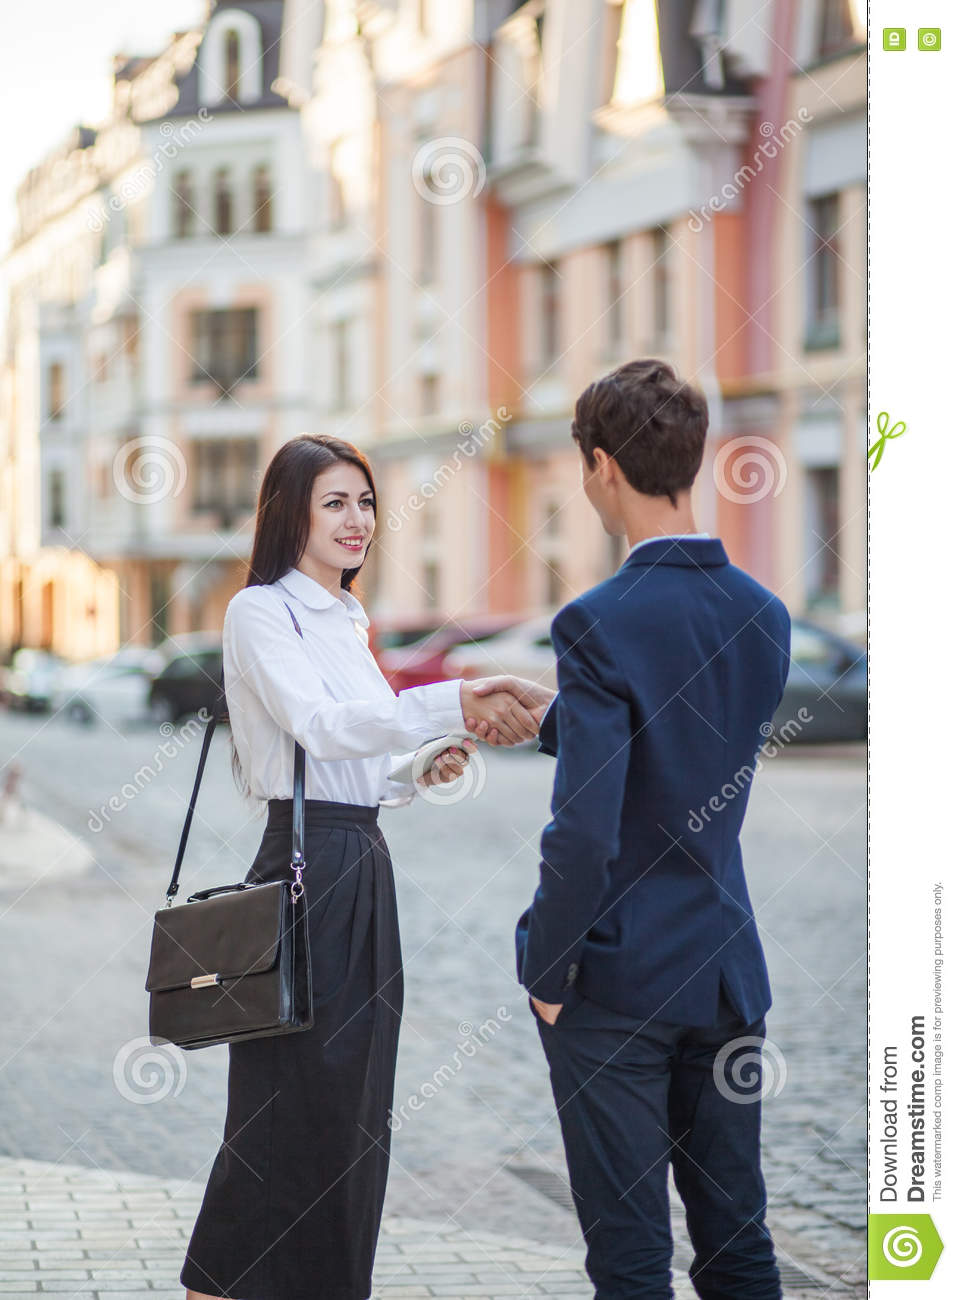 Acquaintance and communication of businessman, businesswoman